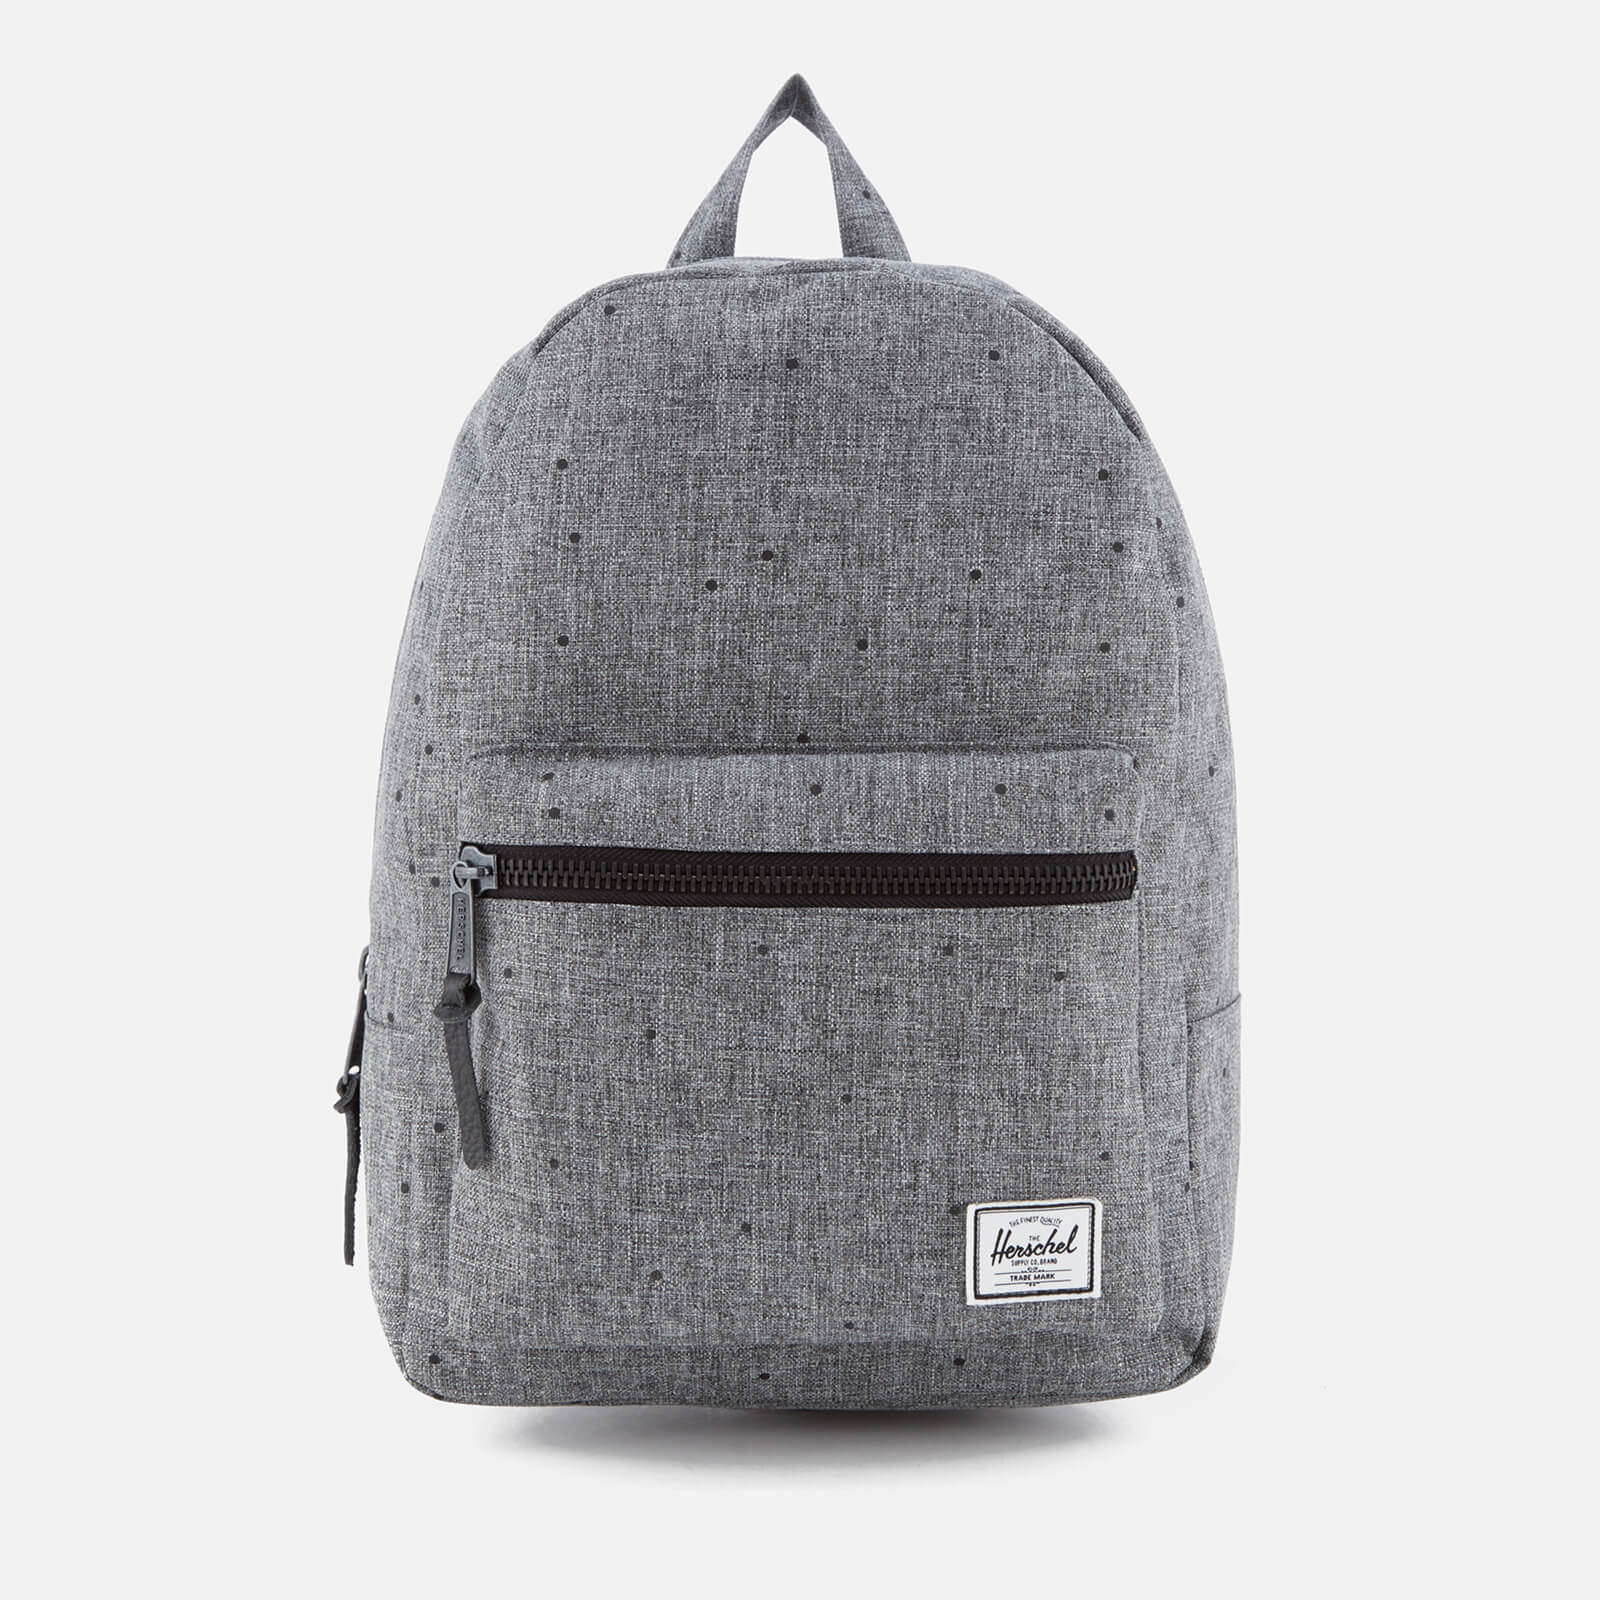 6b9d0ce768a Herschel Supply Co. Grove Backpack - Scattered Raven Crosshatch - XS - Free  UK Delivery over £50